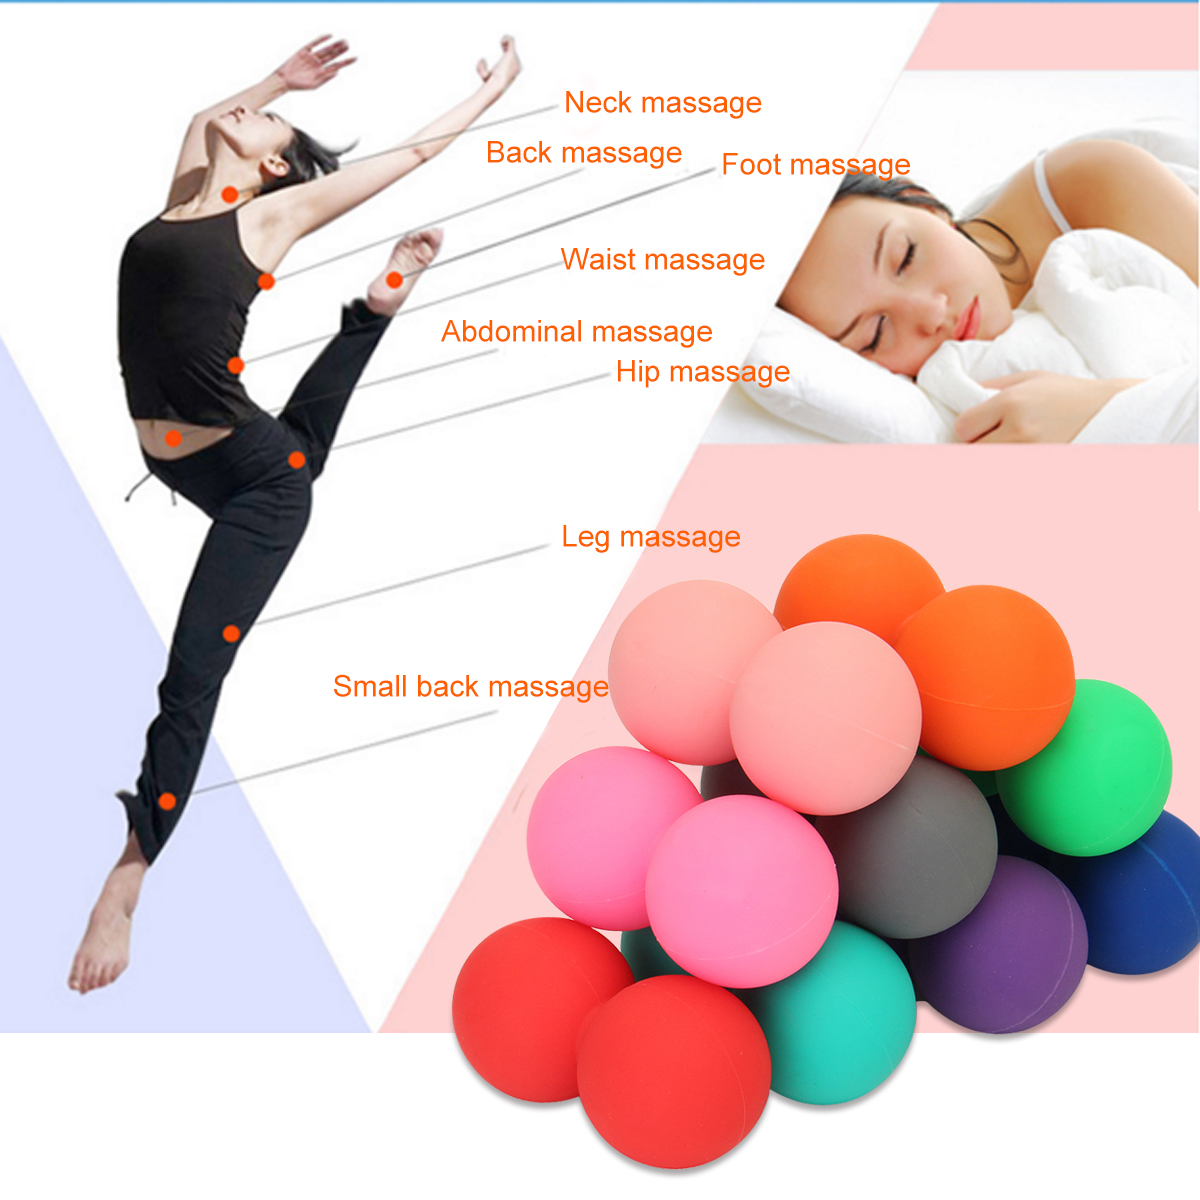 Double Lacrosse Tools for Myofascial Release Physical Therapy Peanut Shaped Massage Ball